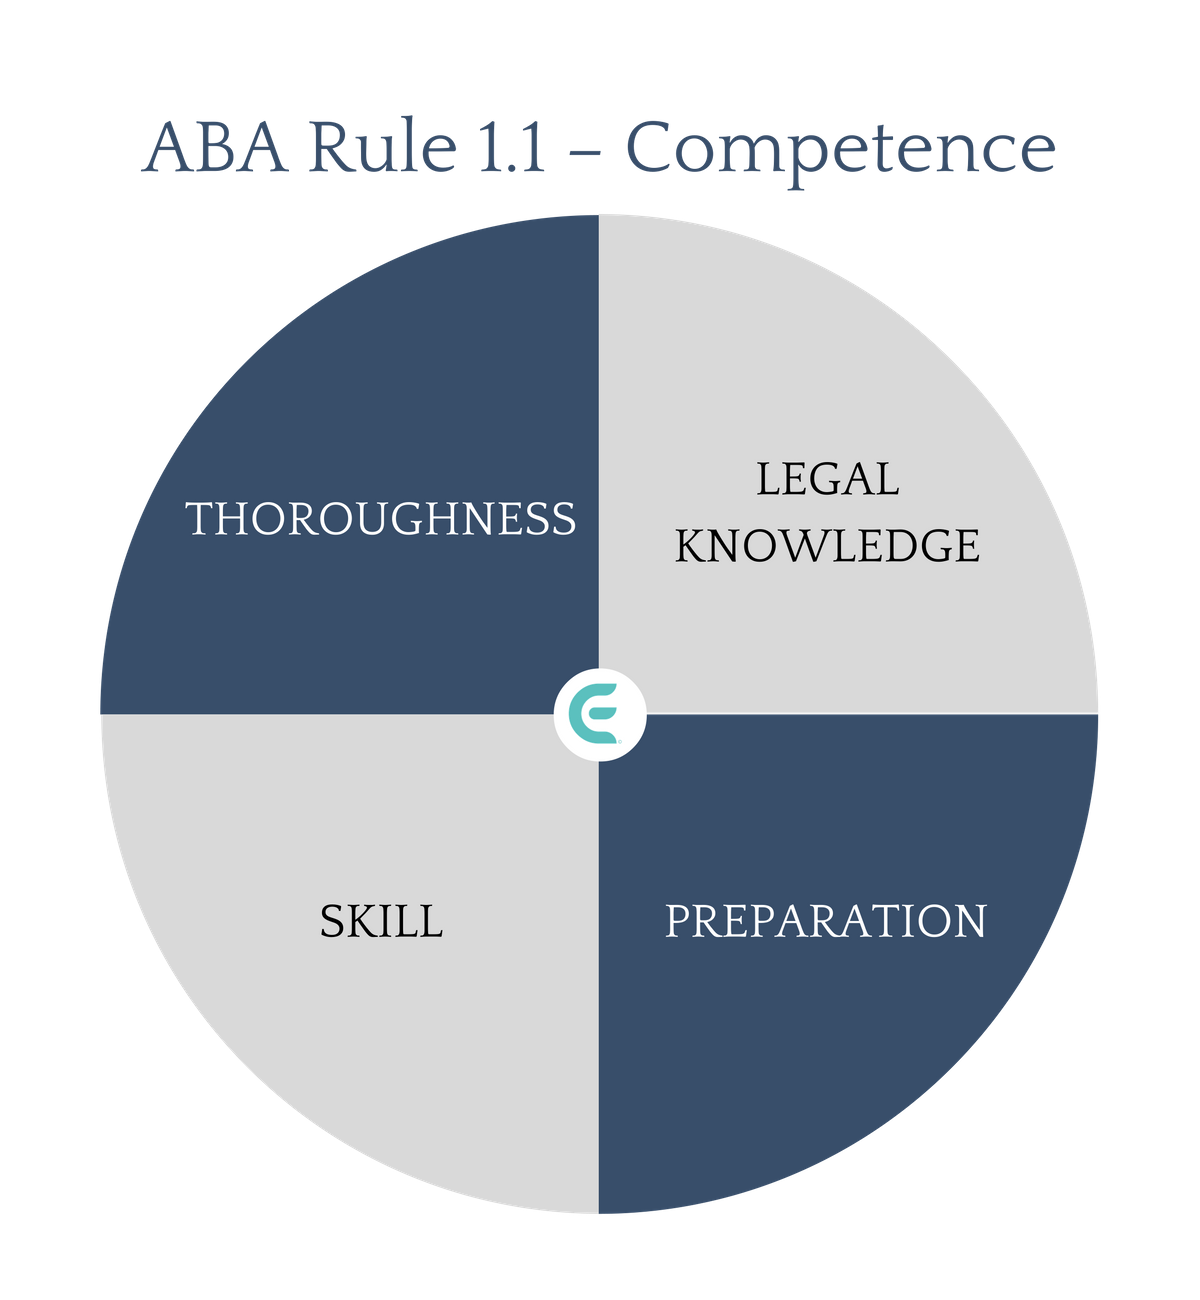 ABA Rule 1.1 – Competence